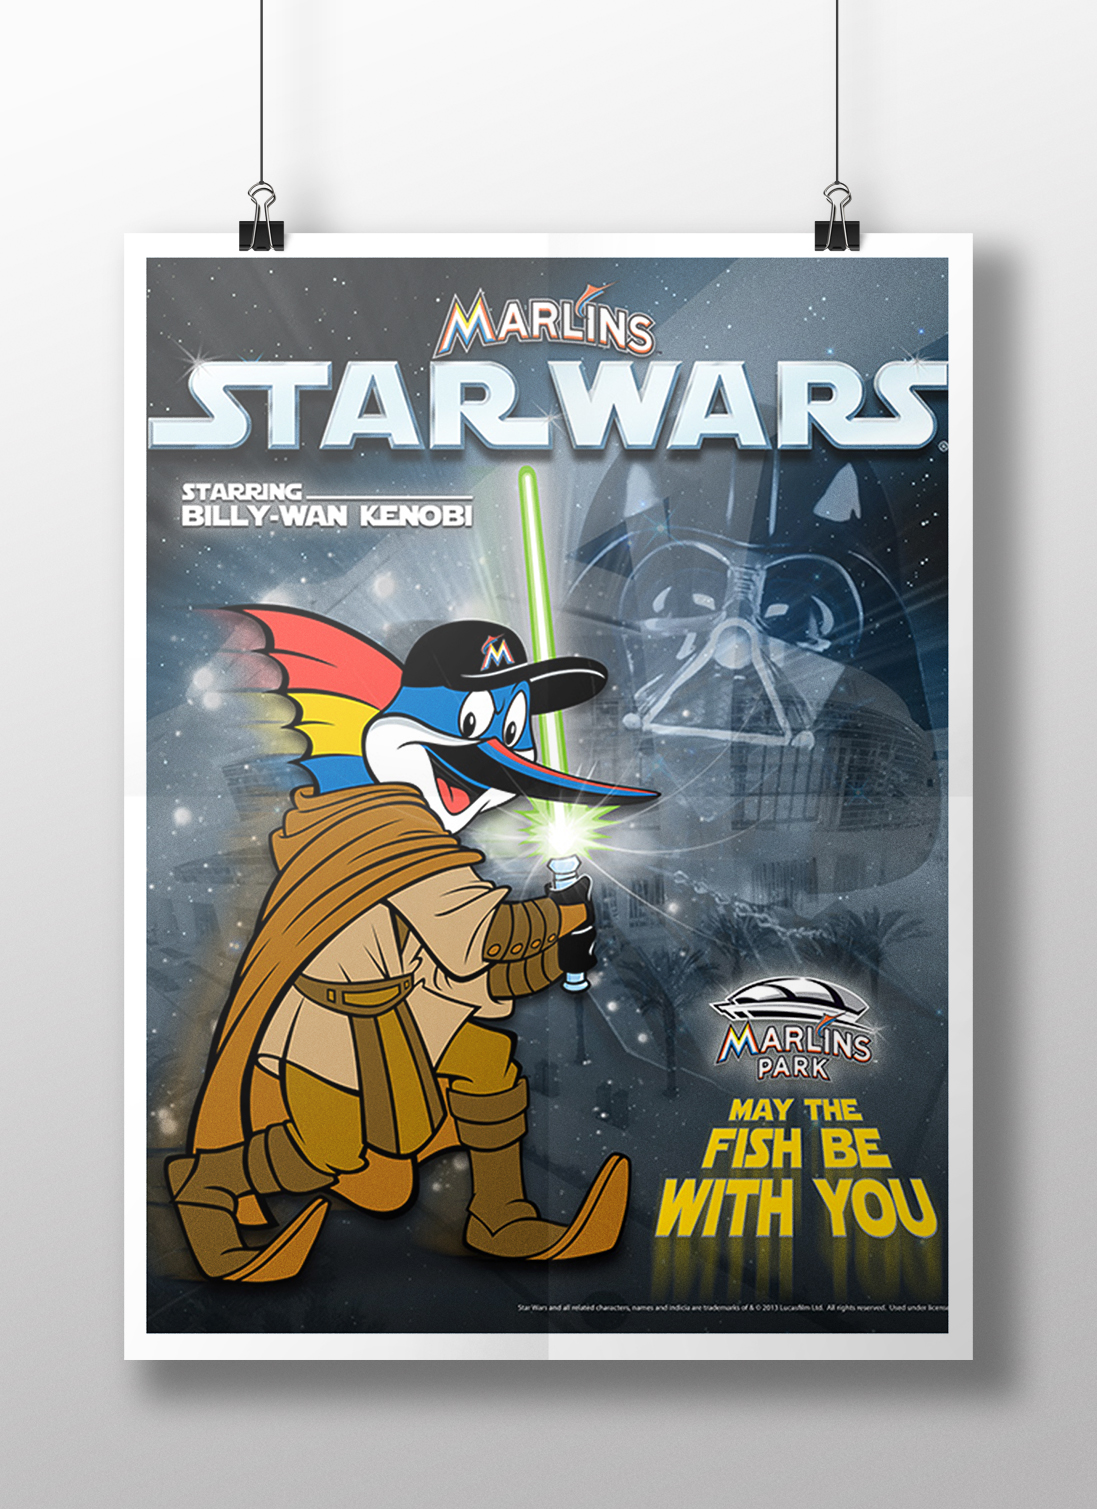 Marlins Star Wars Poster